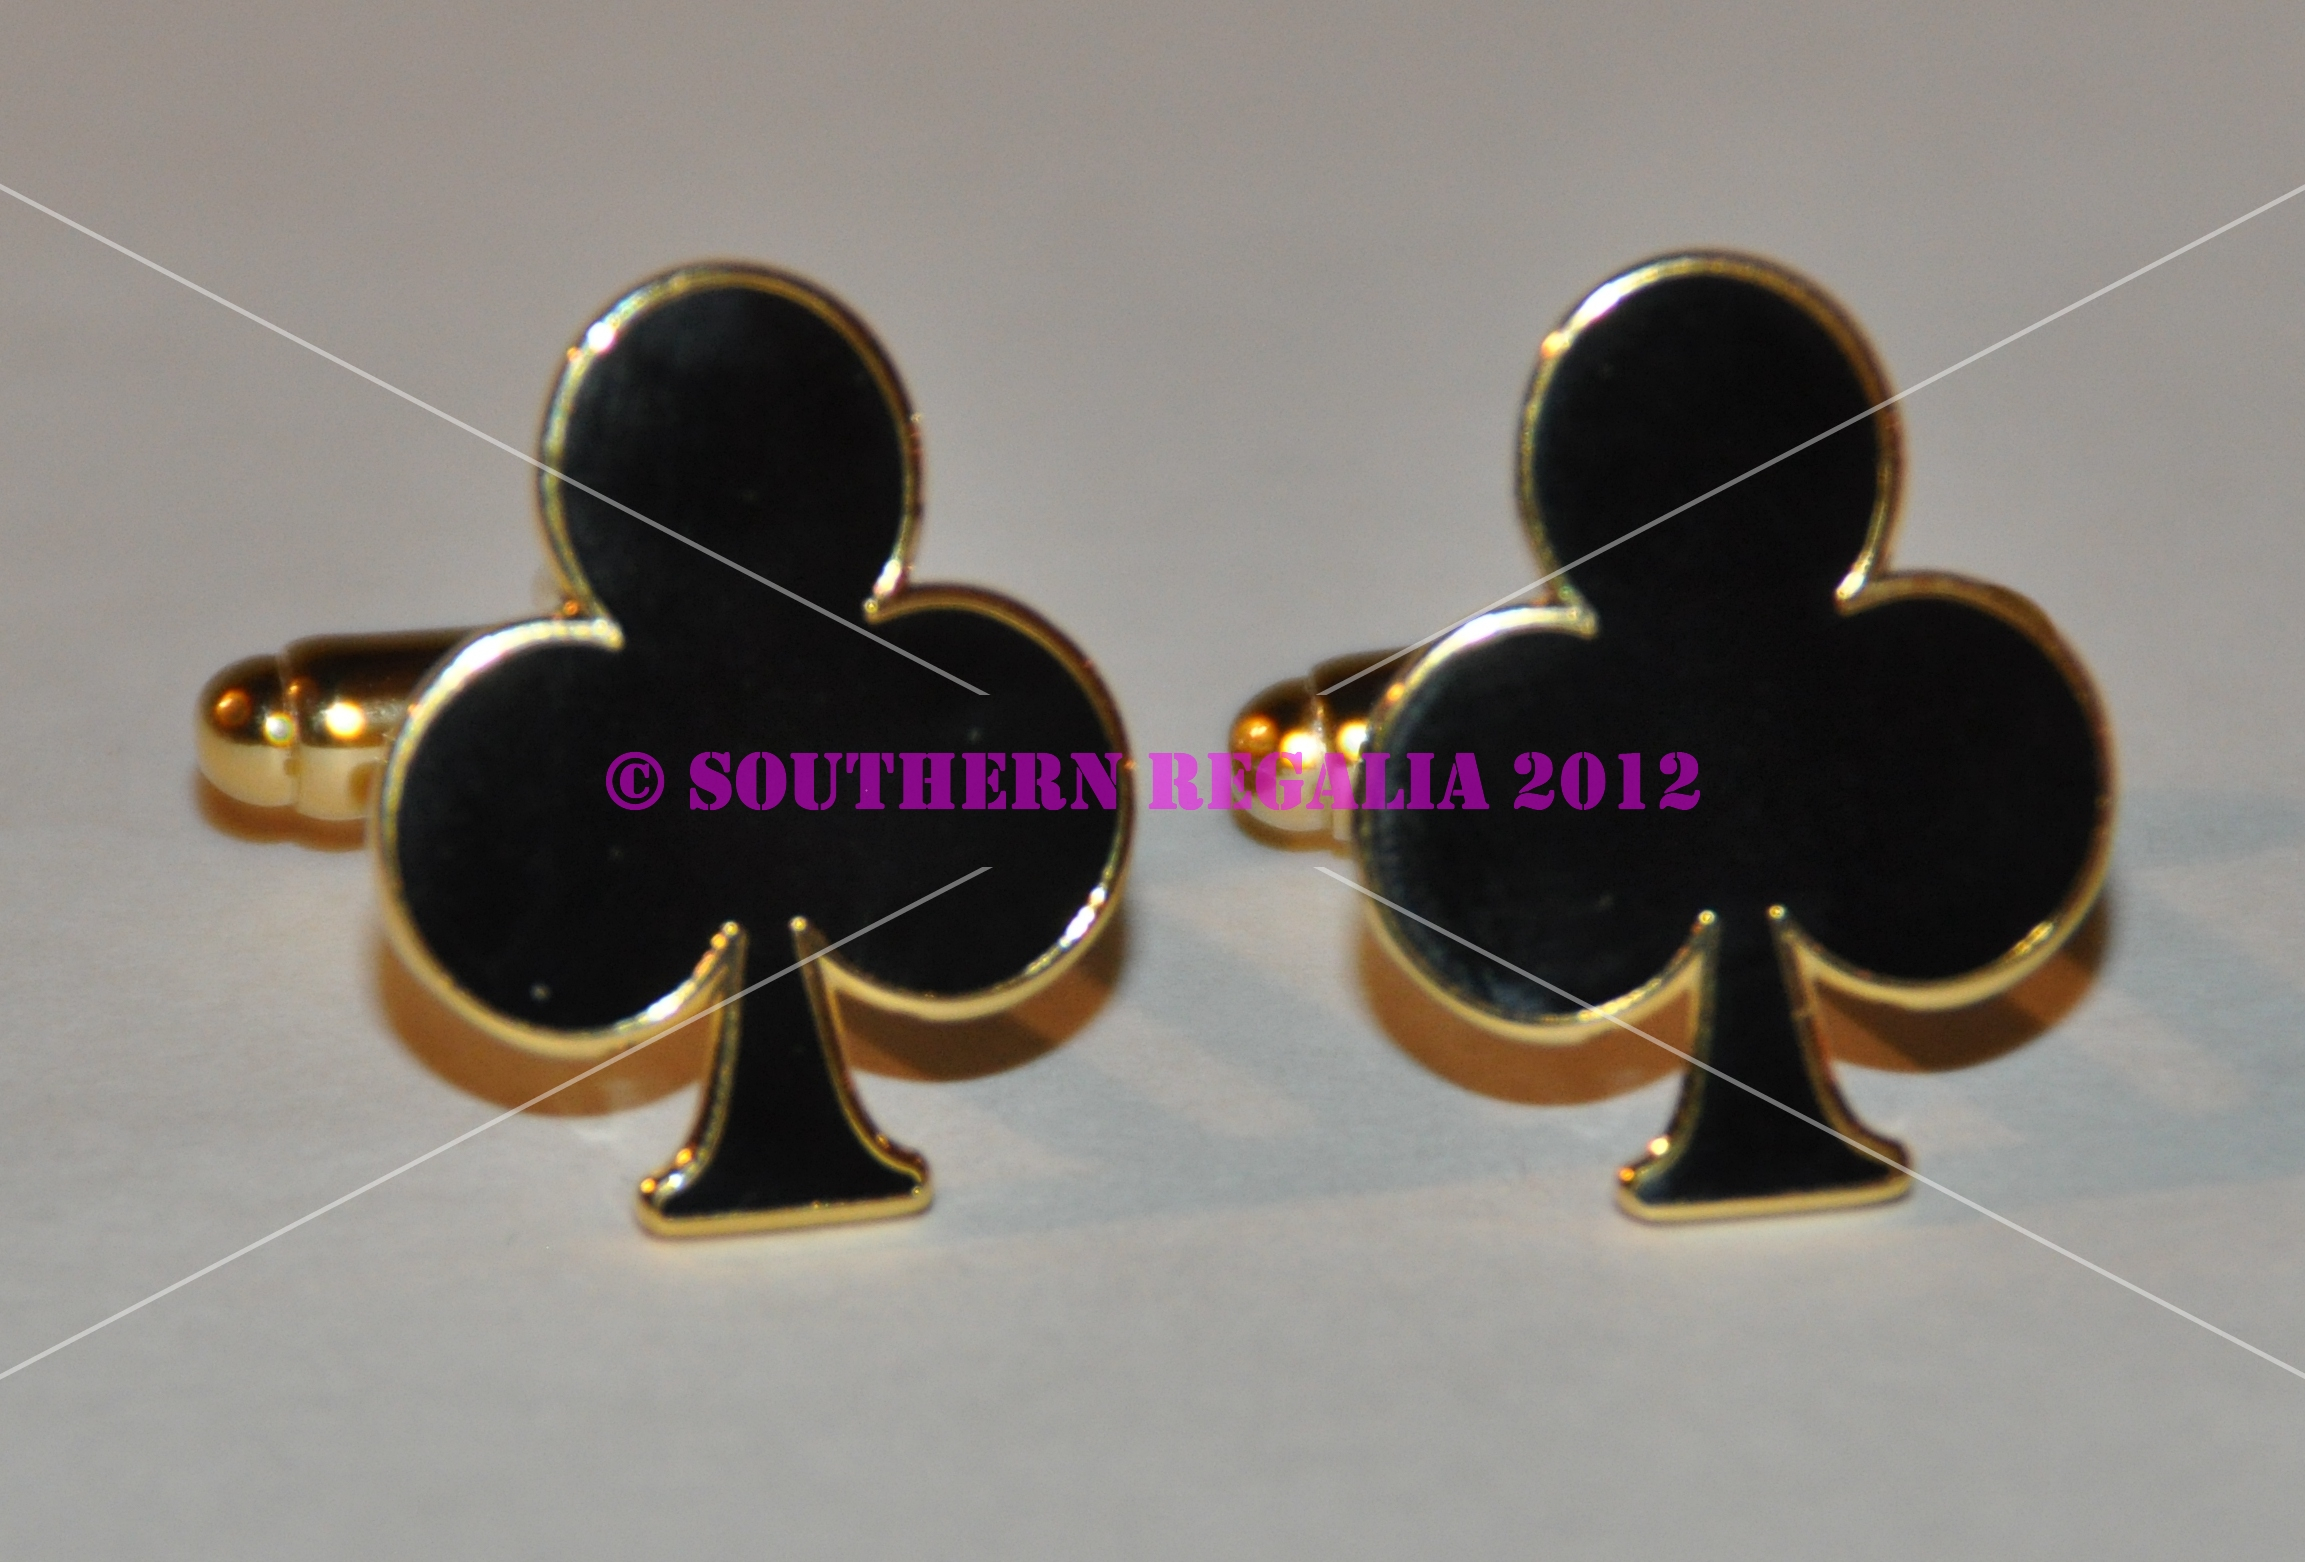 Playing Card - Clubs Gold Plated Cufflinks